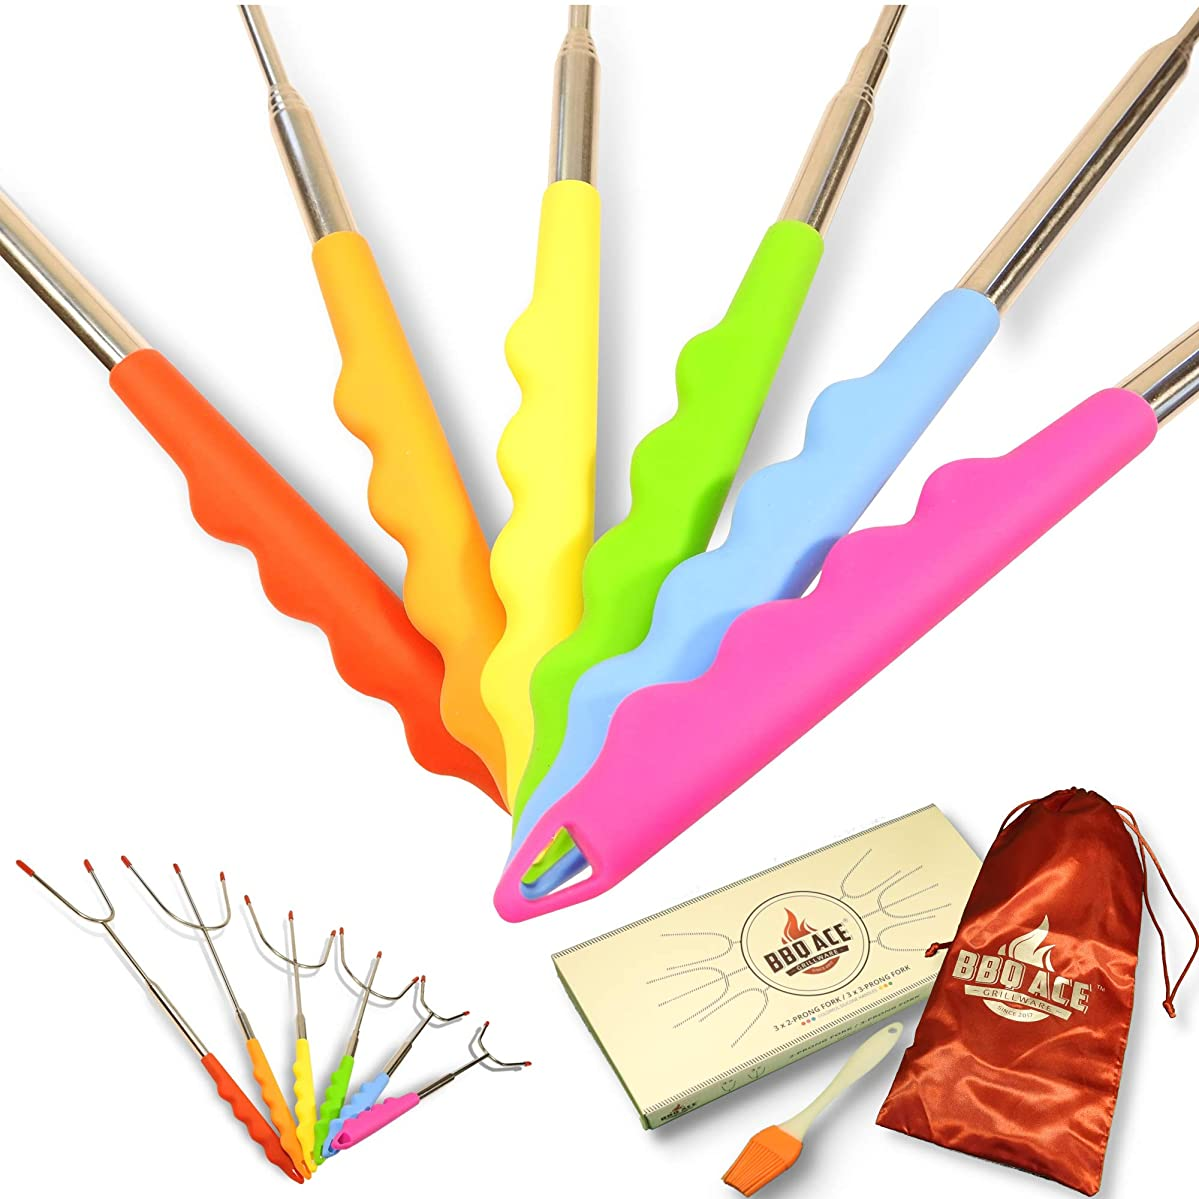 Marshmallow Roasting Sticks w Colorful Silicone Handles for Kids, Fire Pit, Campfire, Bonfire, Fireplace | 6 Extra Long Extendable Fork Skewers | SMORE, Hot Dog, Sausage, BBQ, Grilling, Camping